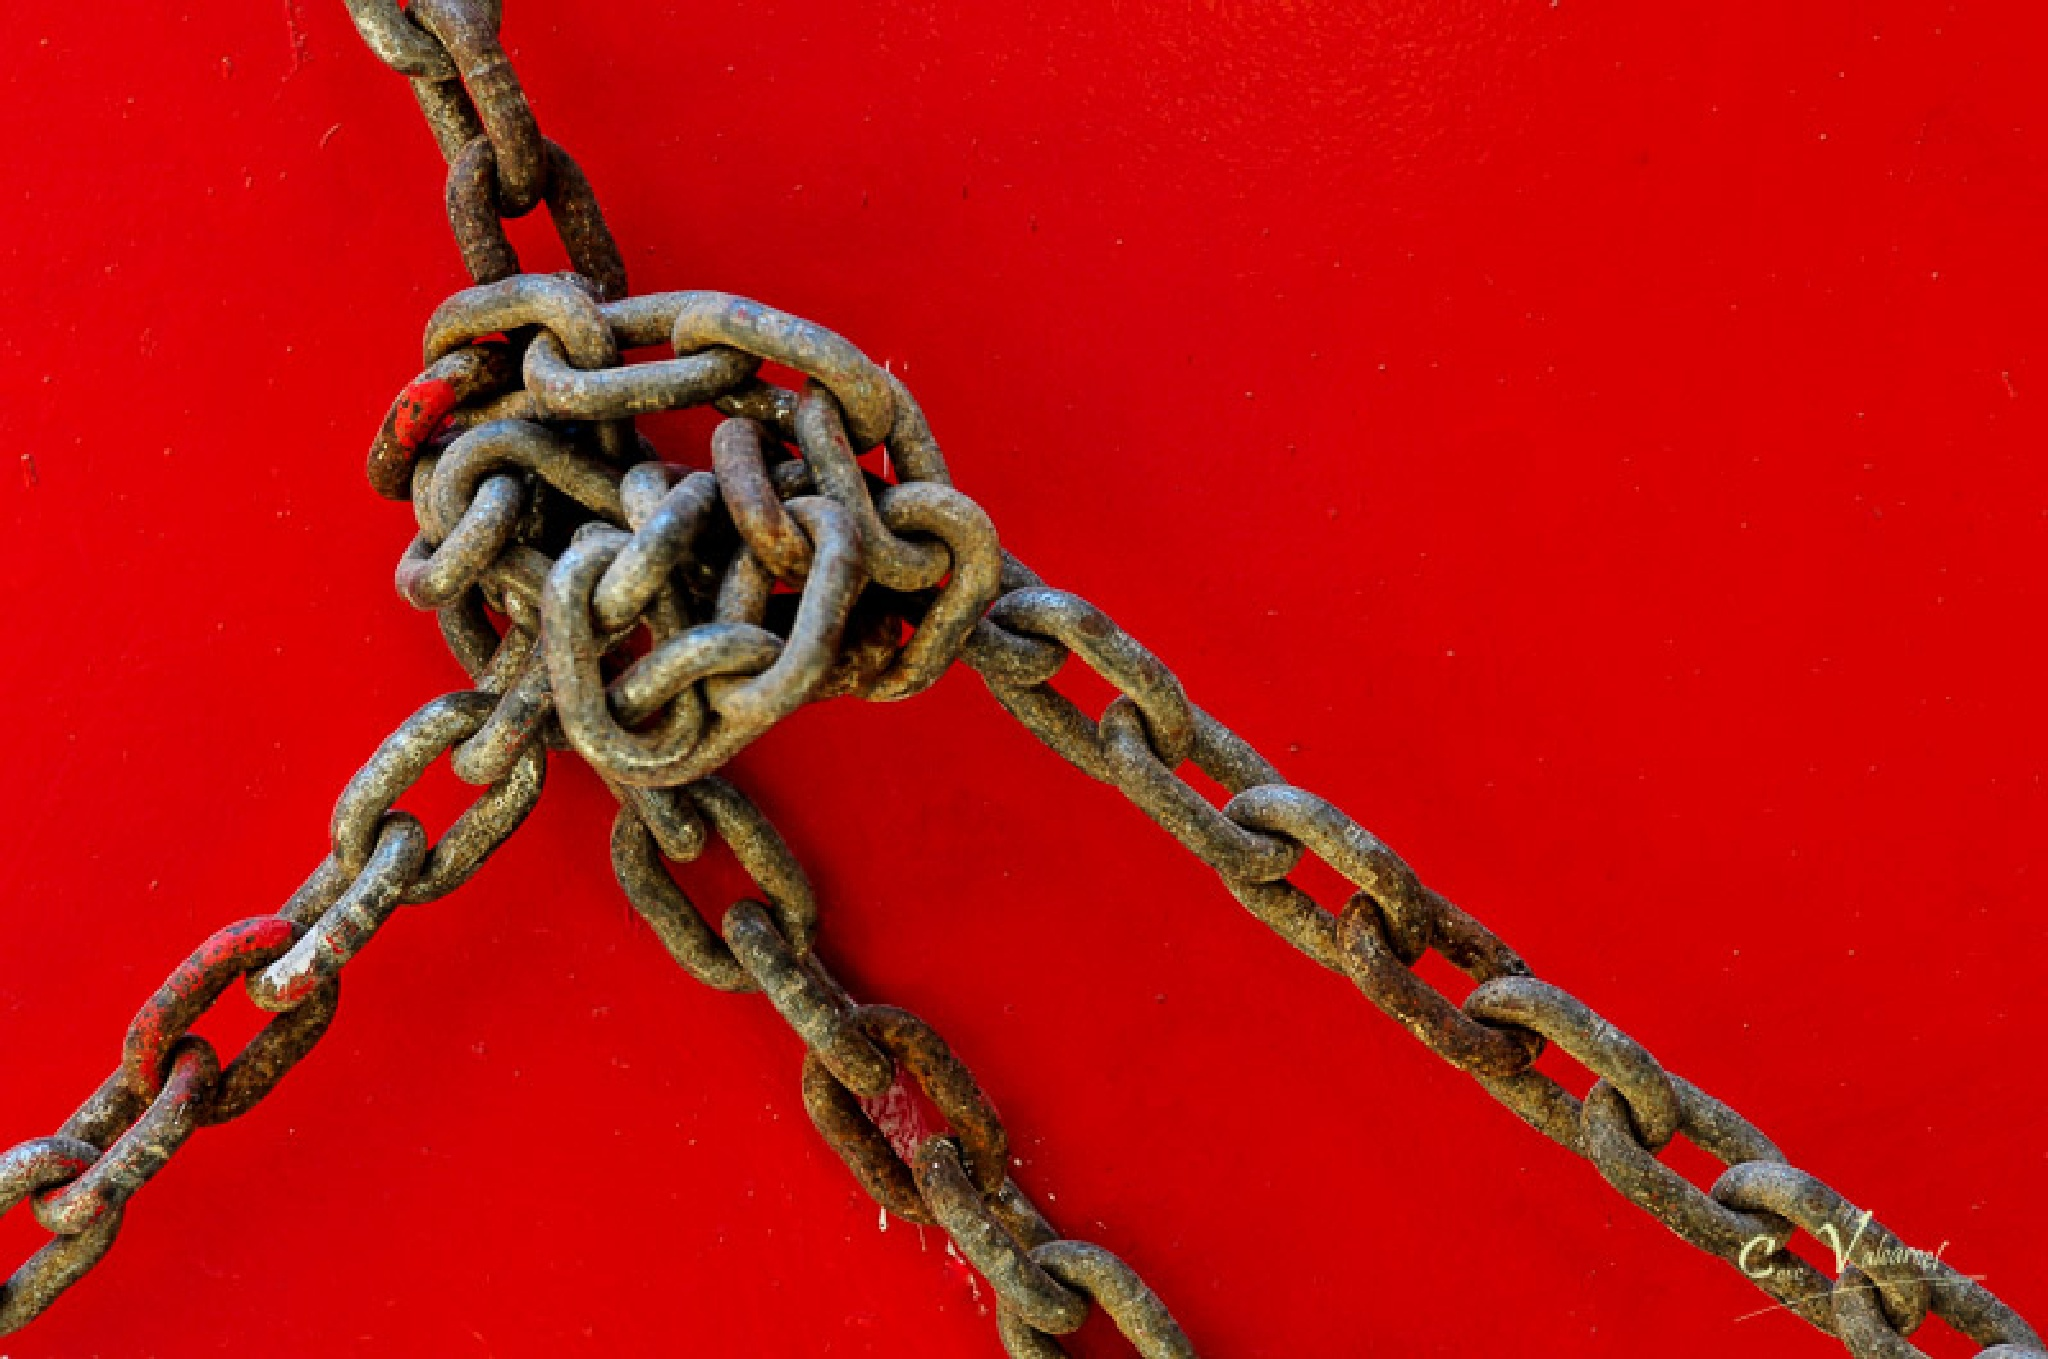 Chains over red by Cesc Valcarcel